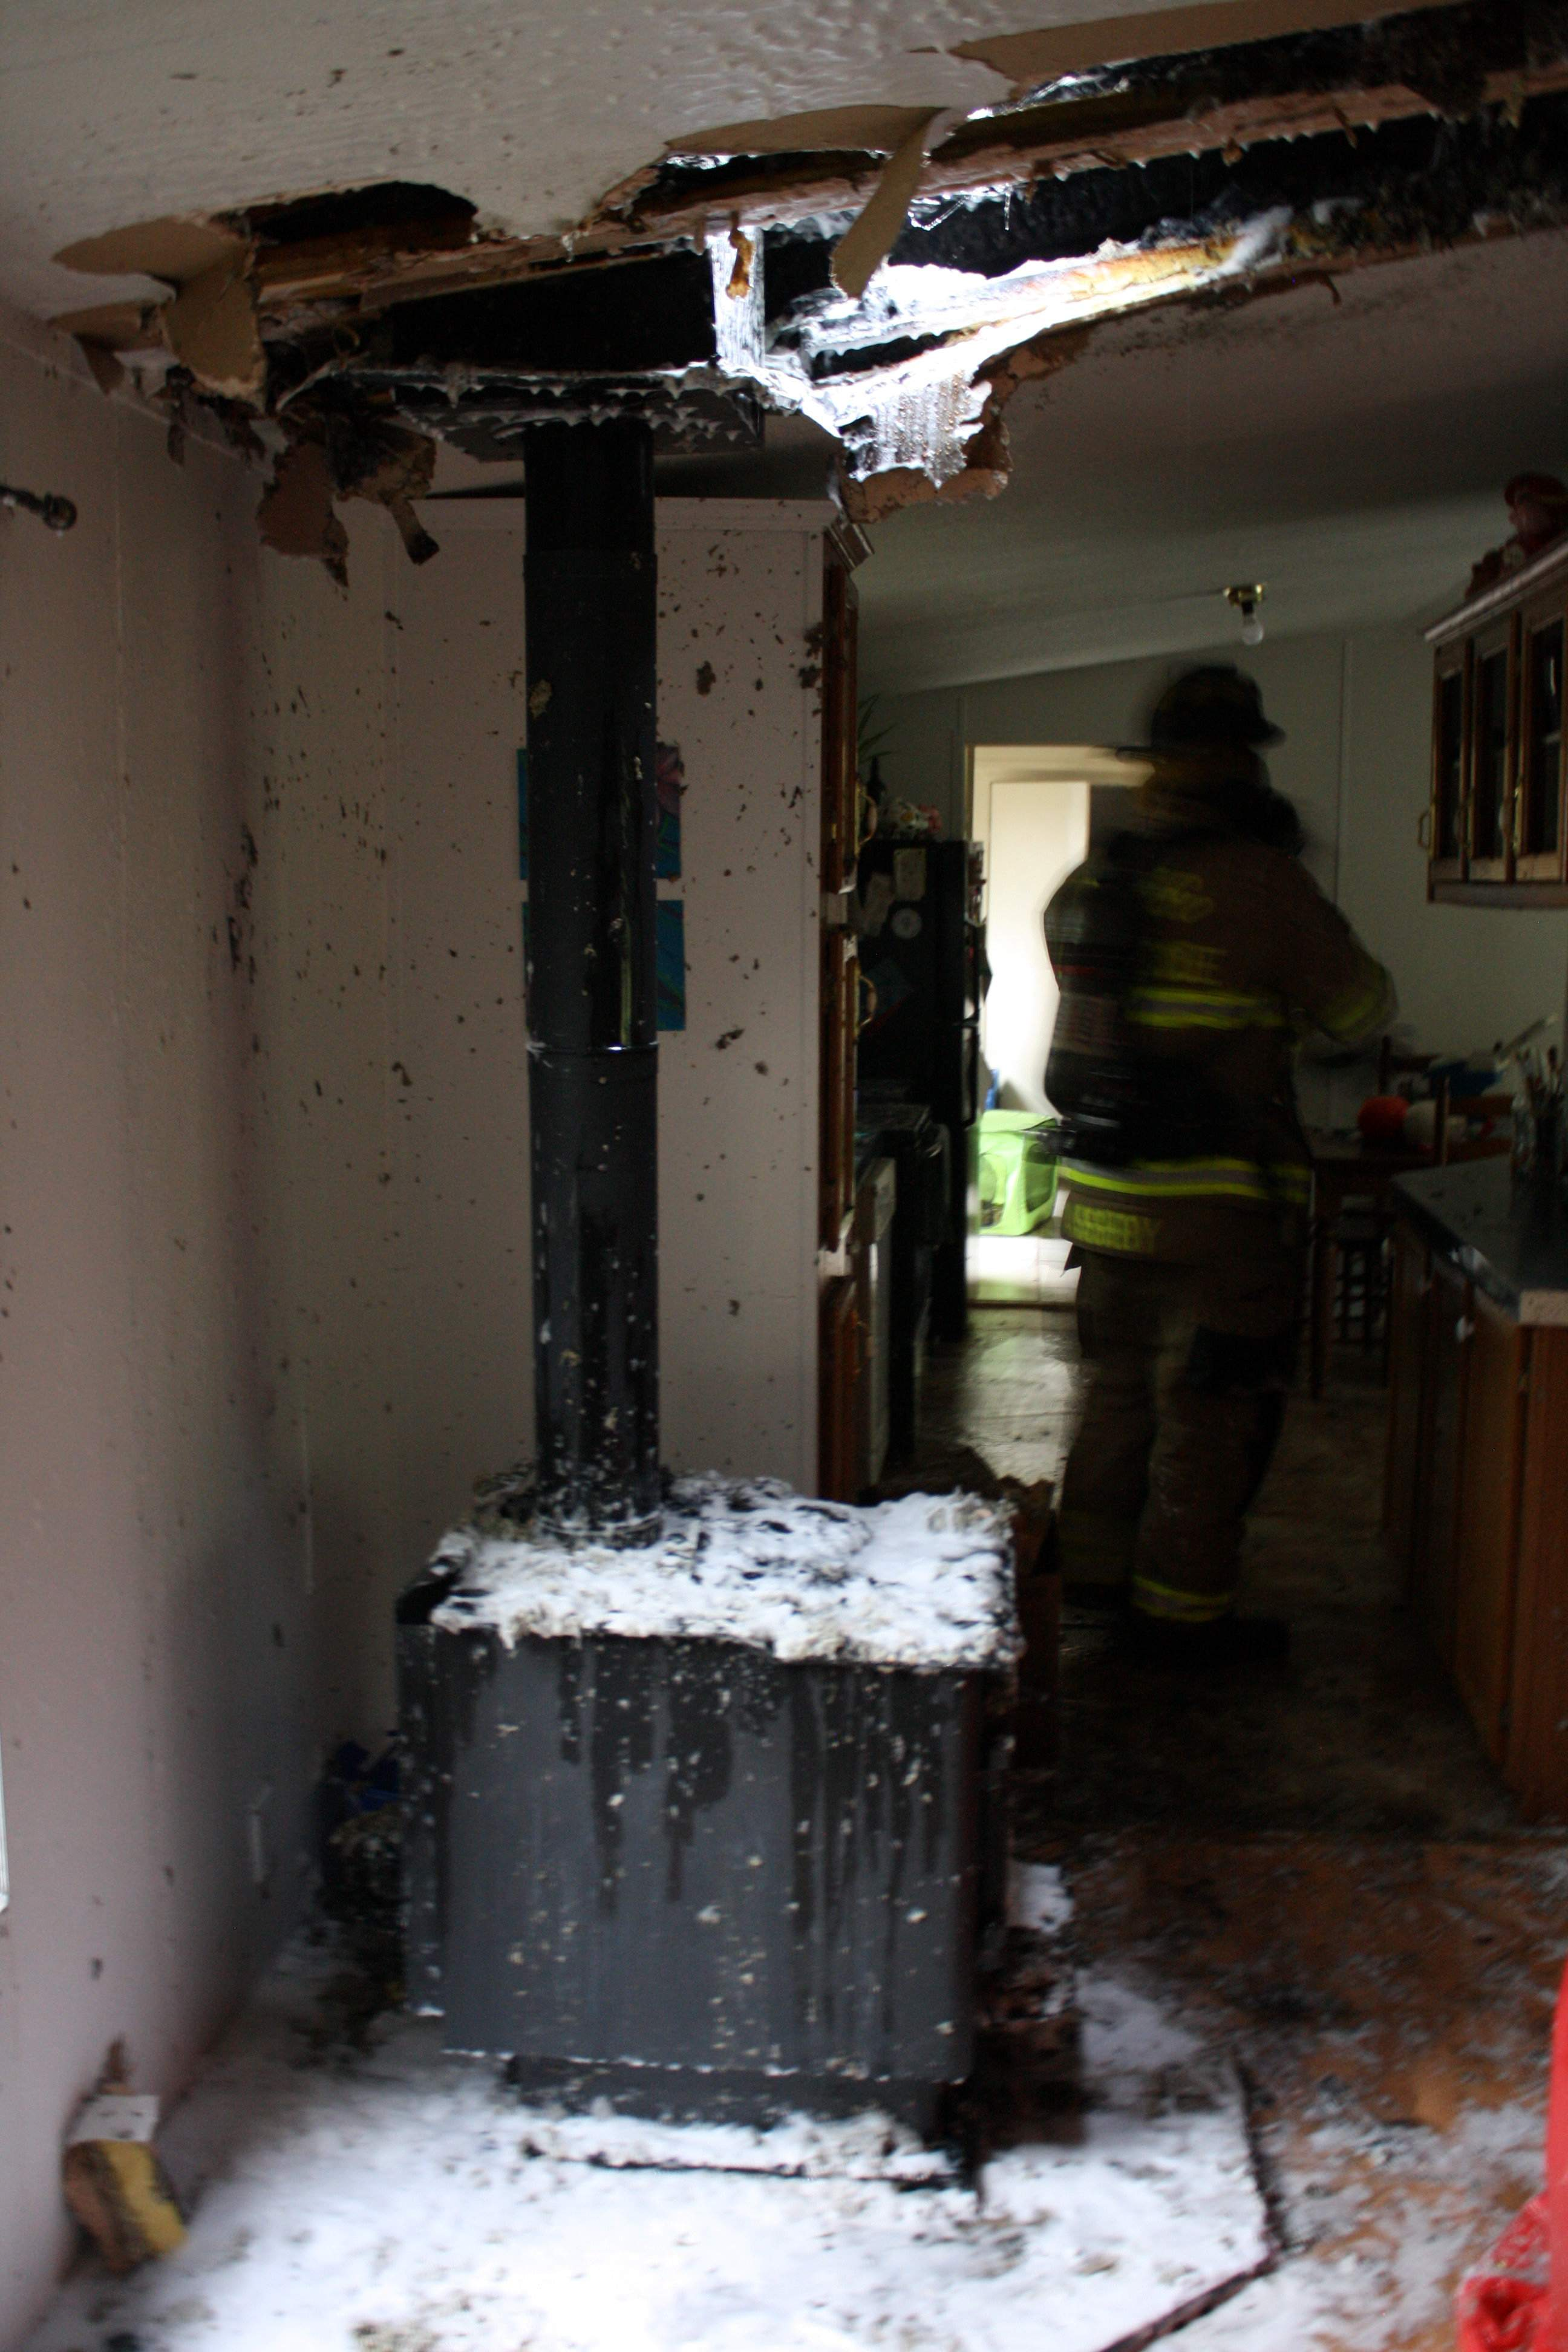 Wood Stove Blamed For Mobile Home Fire West Of Durango